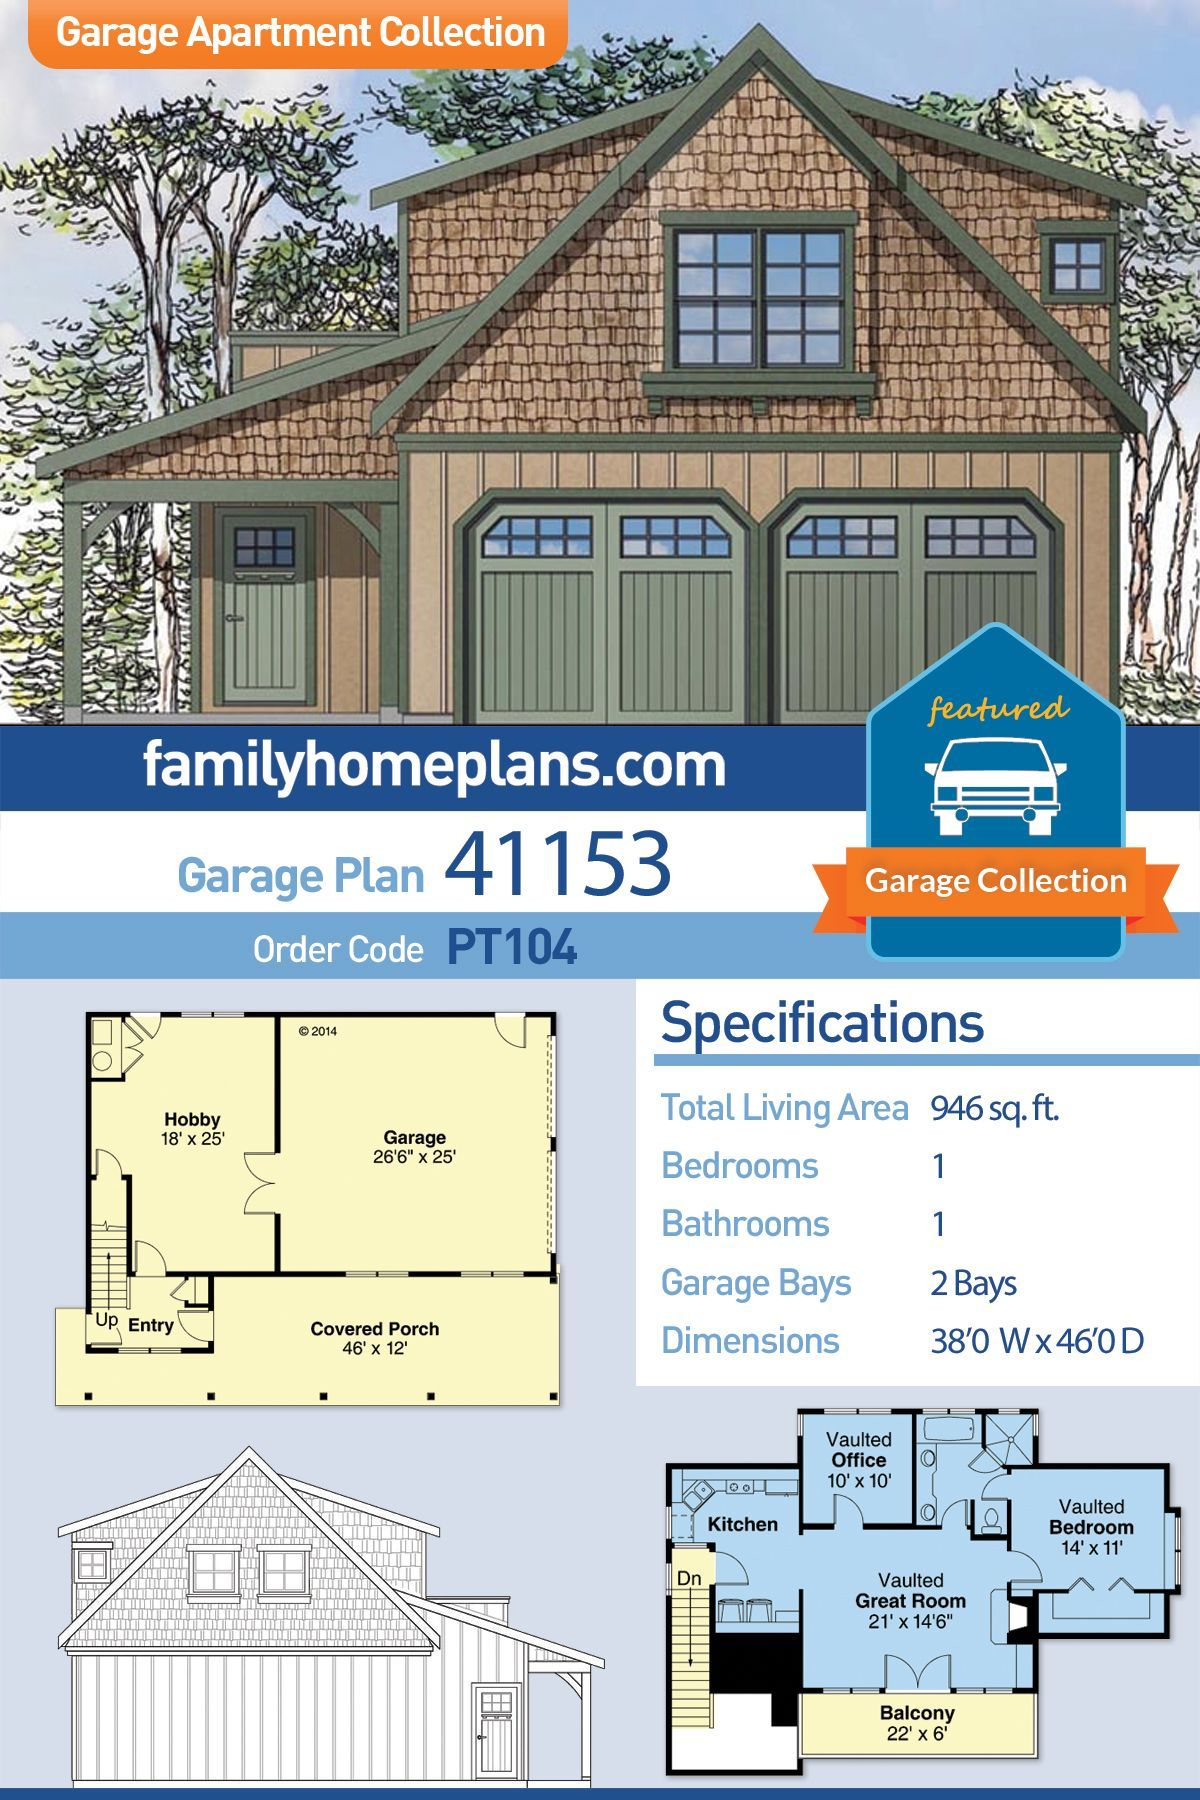 Carriage House Plan With Hobby Room Office And Balcony Garage Home Plans Collection Garagepla Carriage House Plans Garage Apartment Plans Garage Apartments